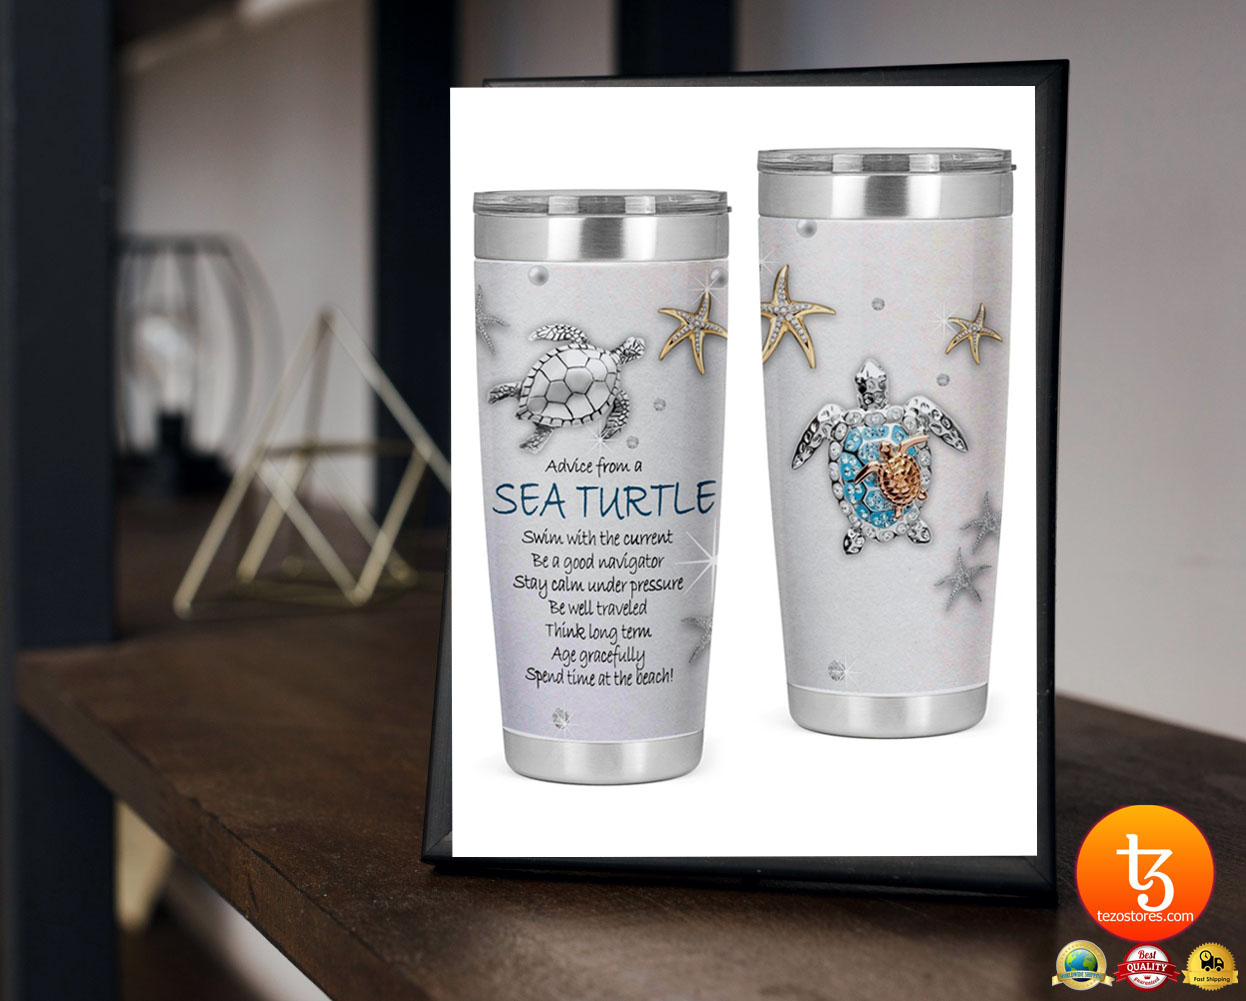 Advice from a sea turtle swim with the current be a good navigator tumbler 23